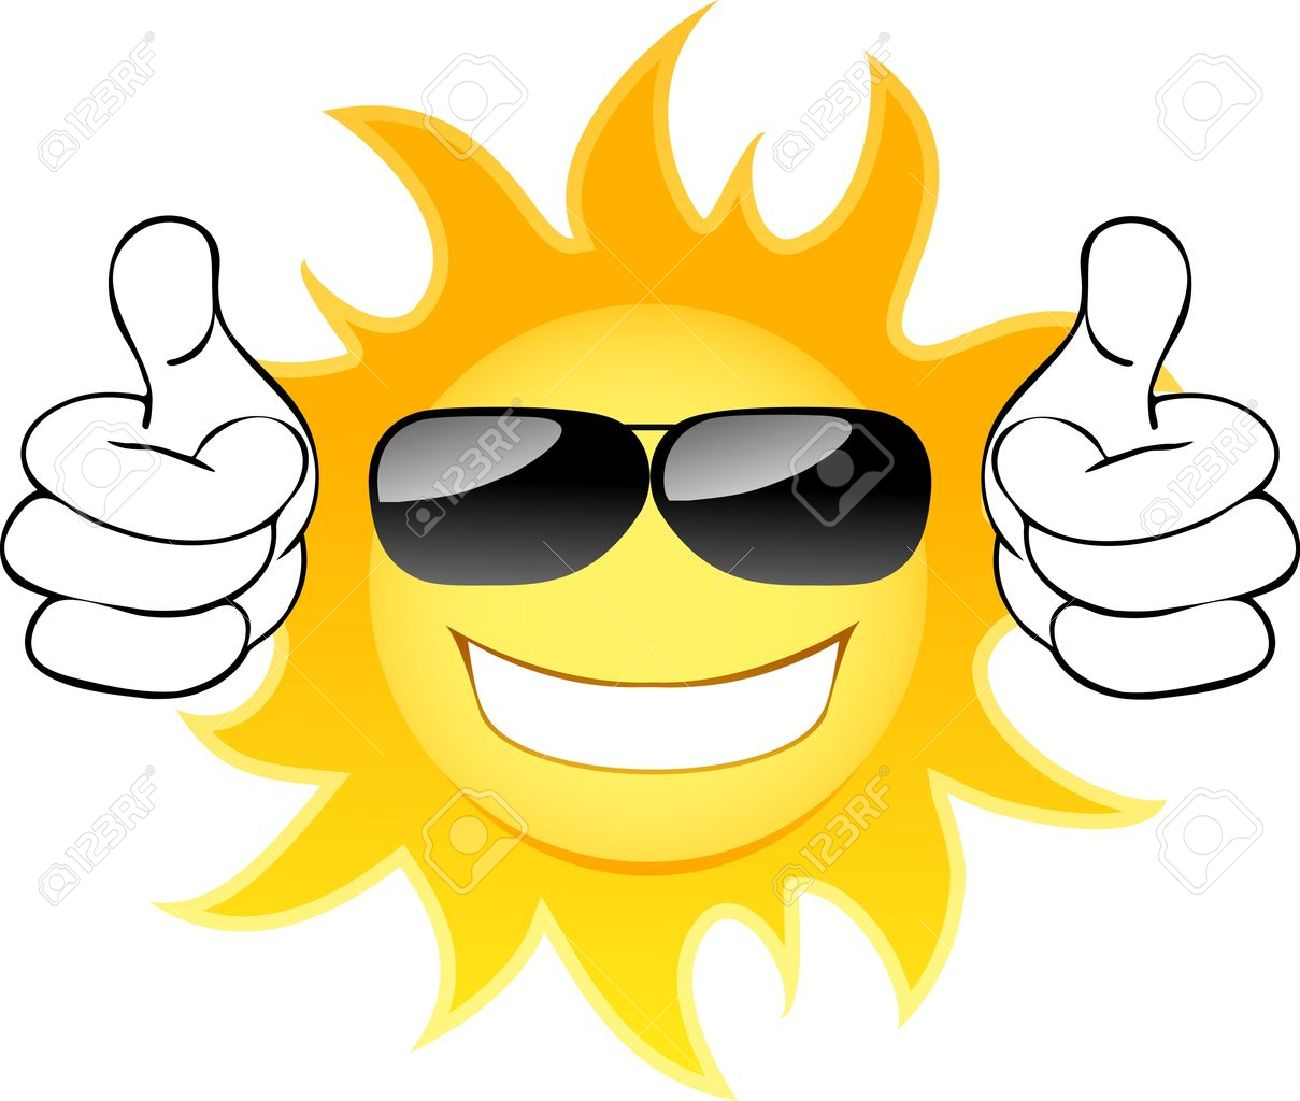 Image result for Images of the sun with a smile